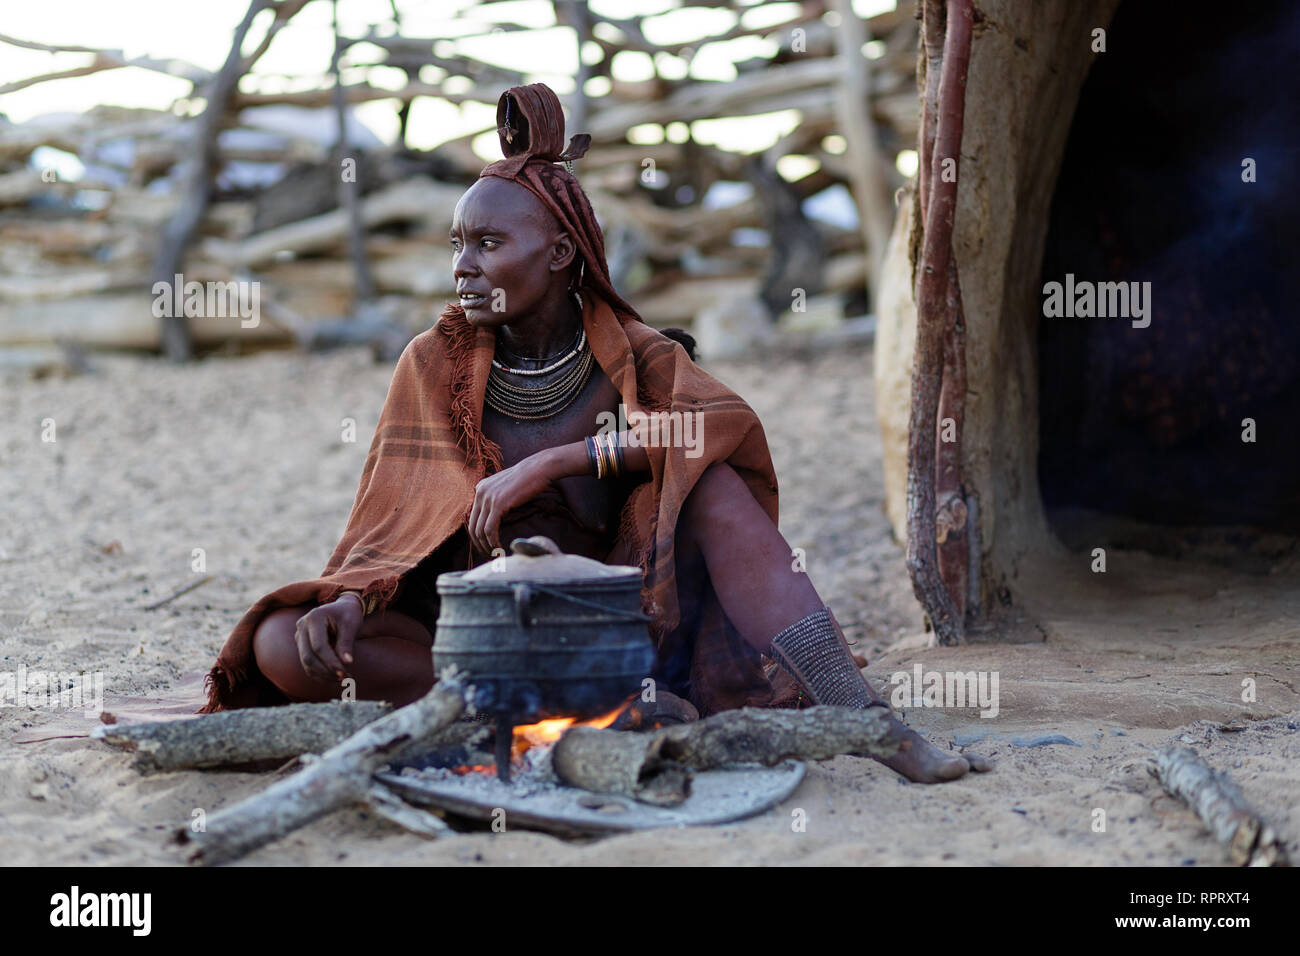 Himba woman sitting in front of the hut making dinner on fire in a traditional village in Northern Namibia - Stock Image